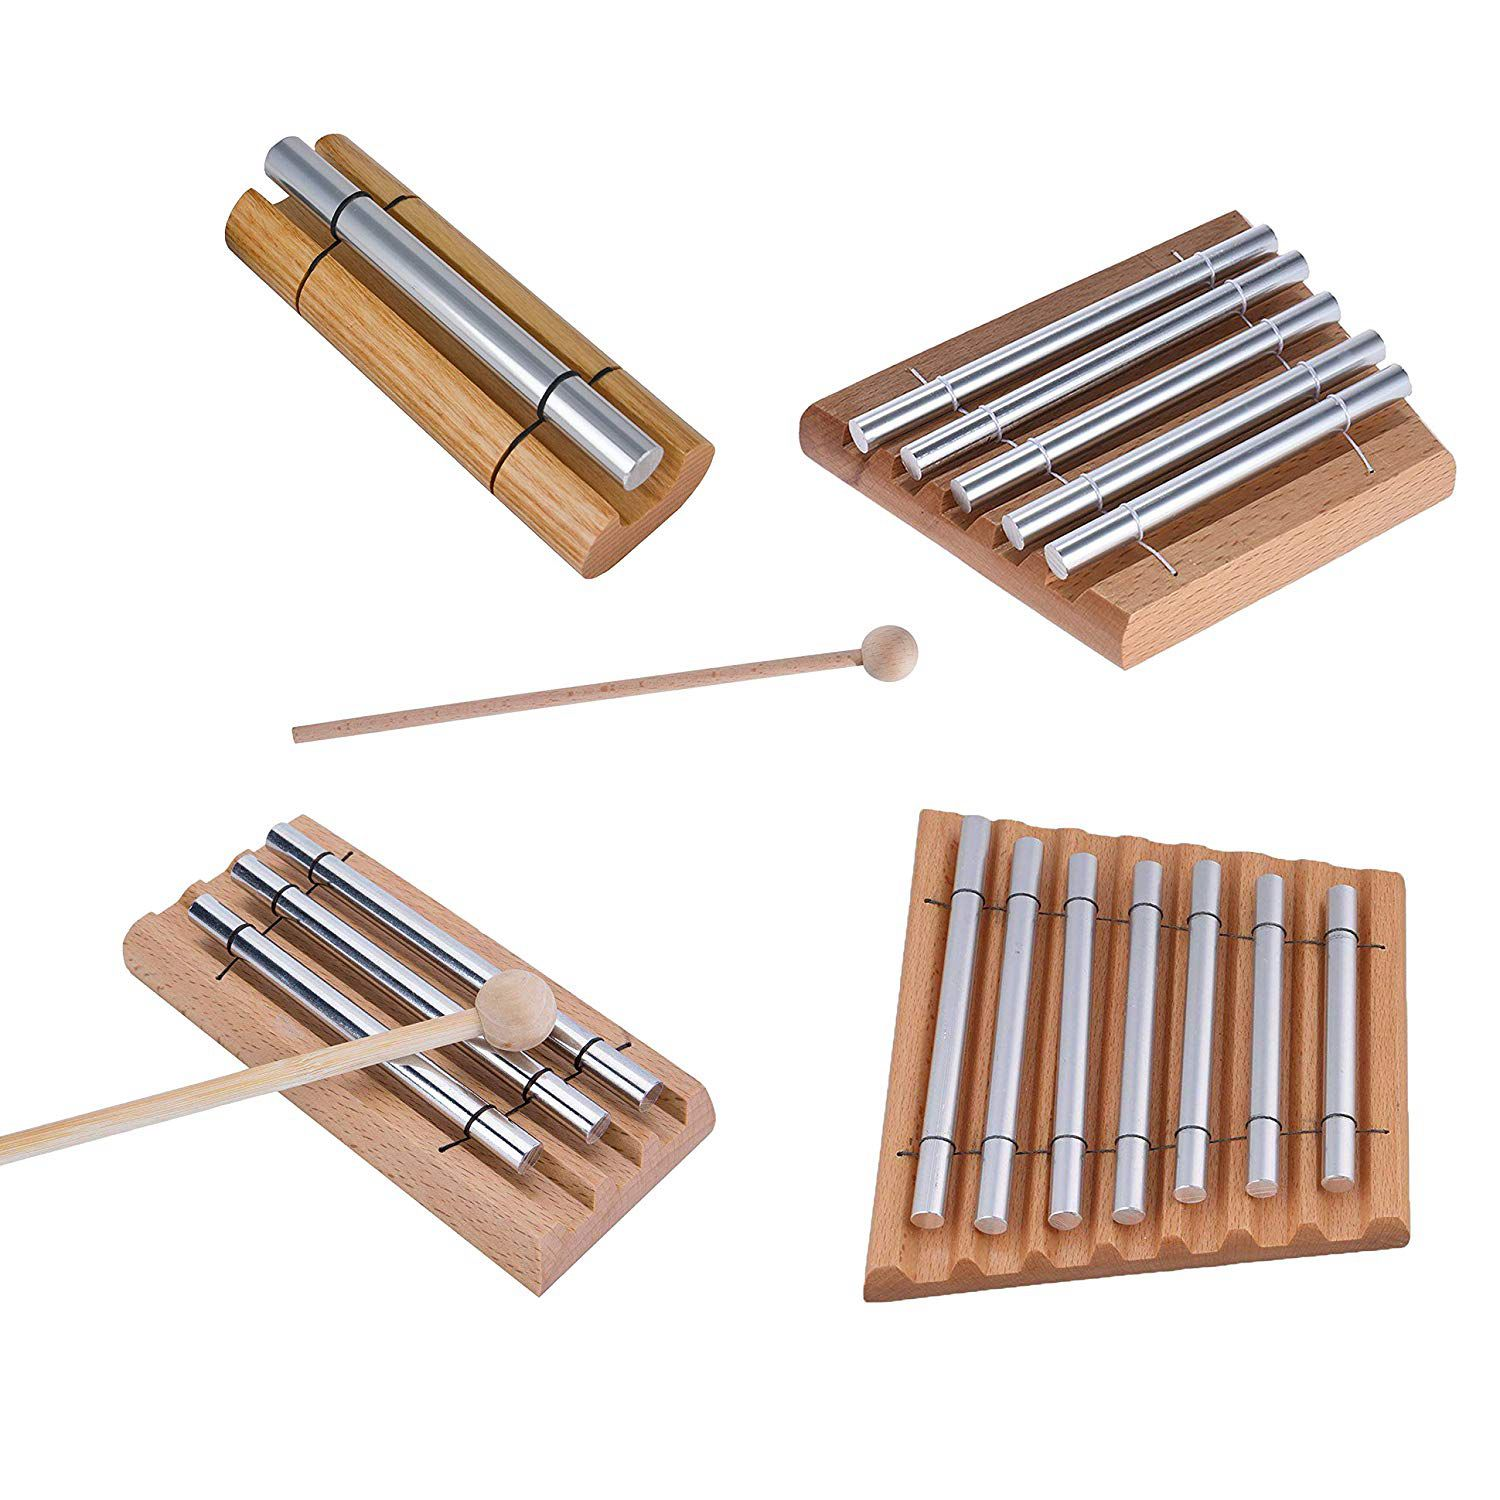 FSTE-2 Pair Wood Mallets Percussion Sticks for Energy Chime, Xylophone, Block, Glockenspiel and Bells